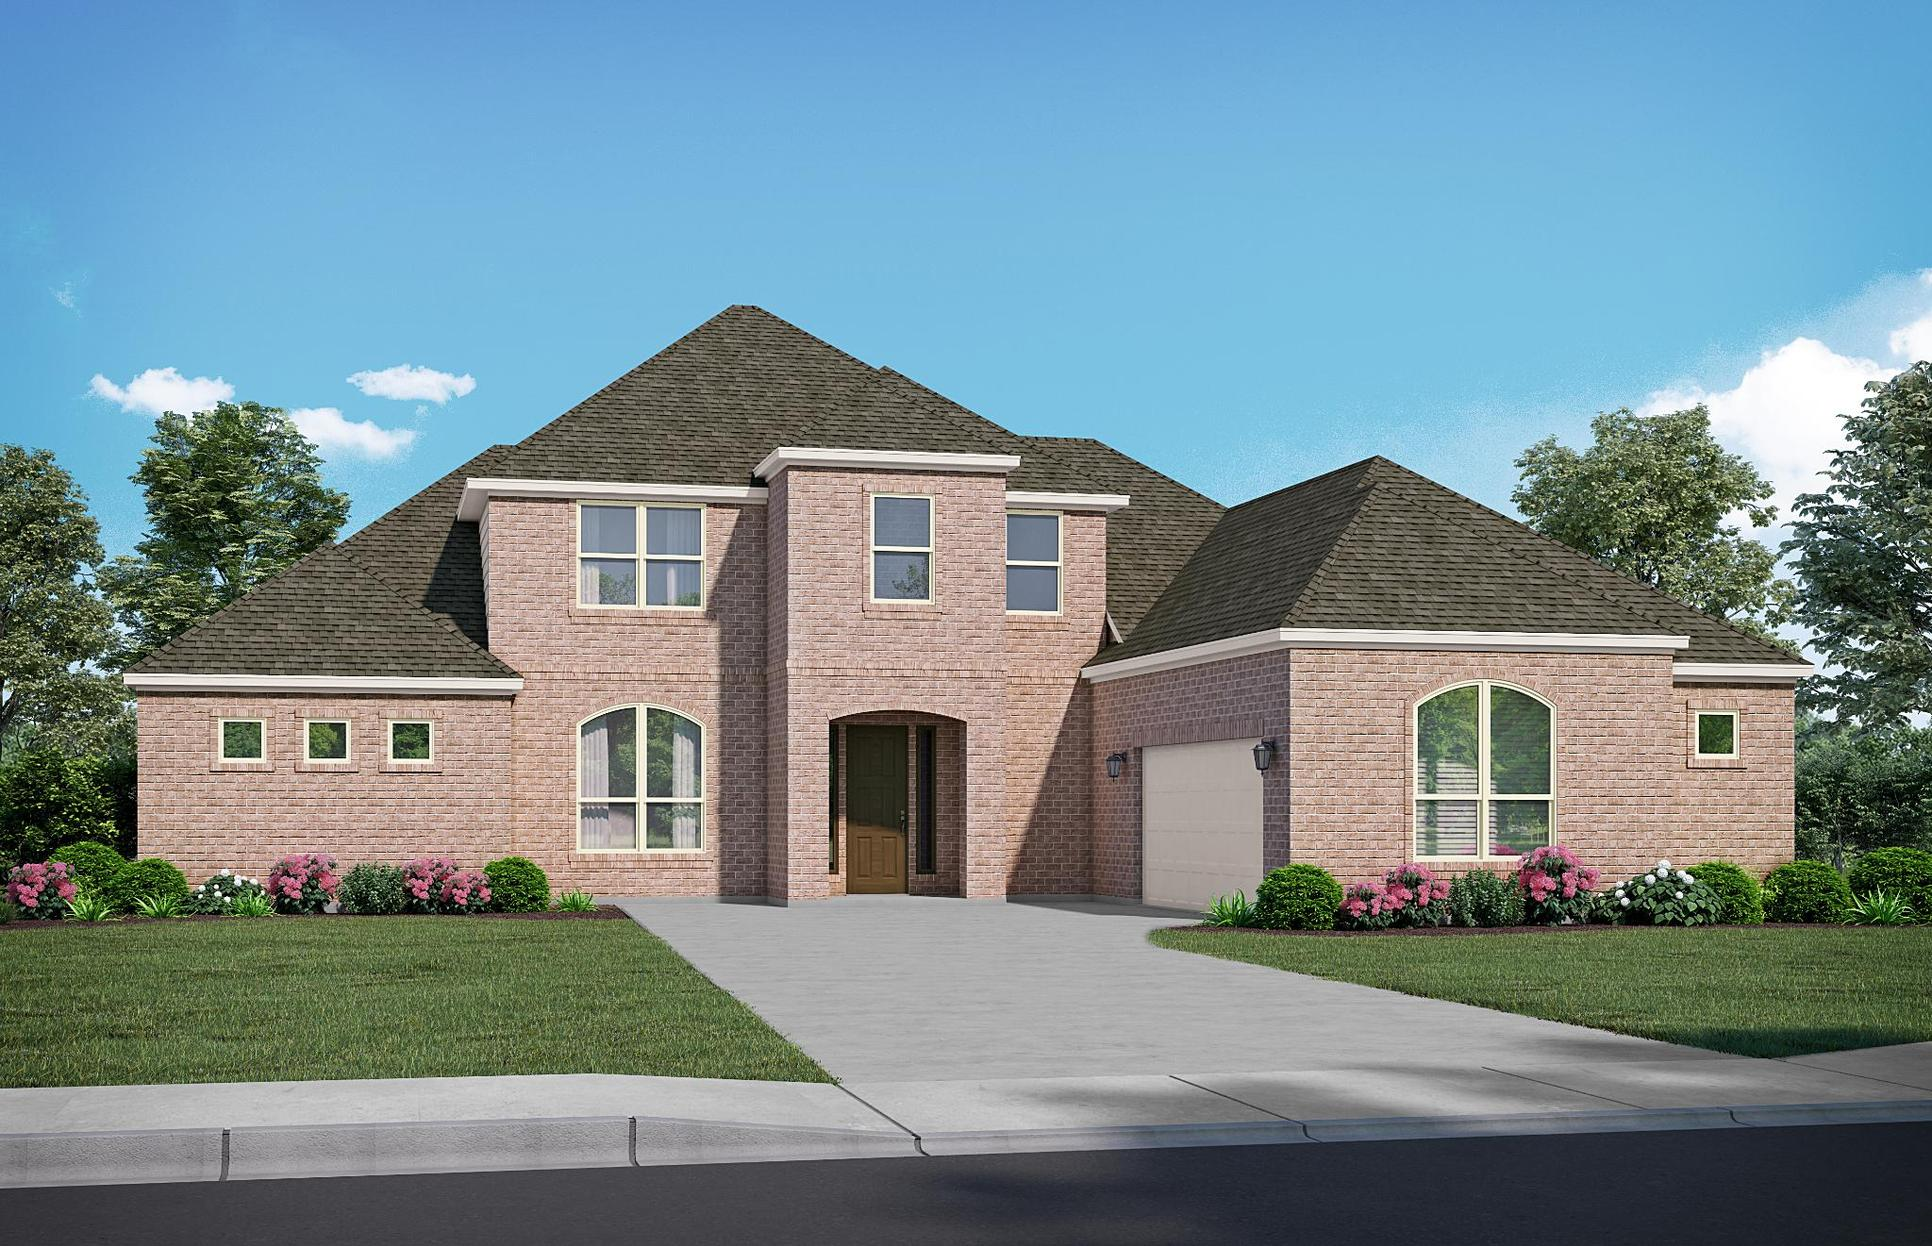 The Chalet - Elevation C. Images are artist renderings and will differ from the actual home built.:Elevation C